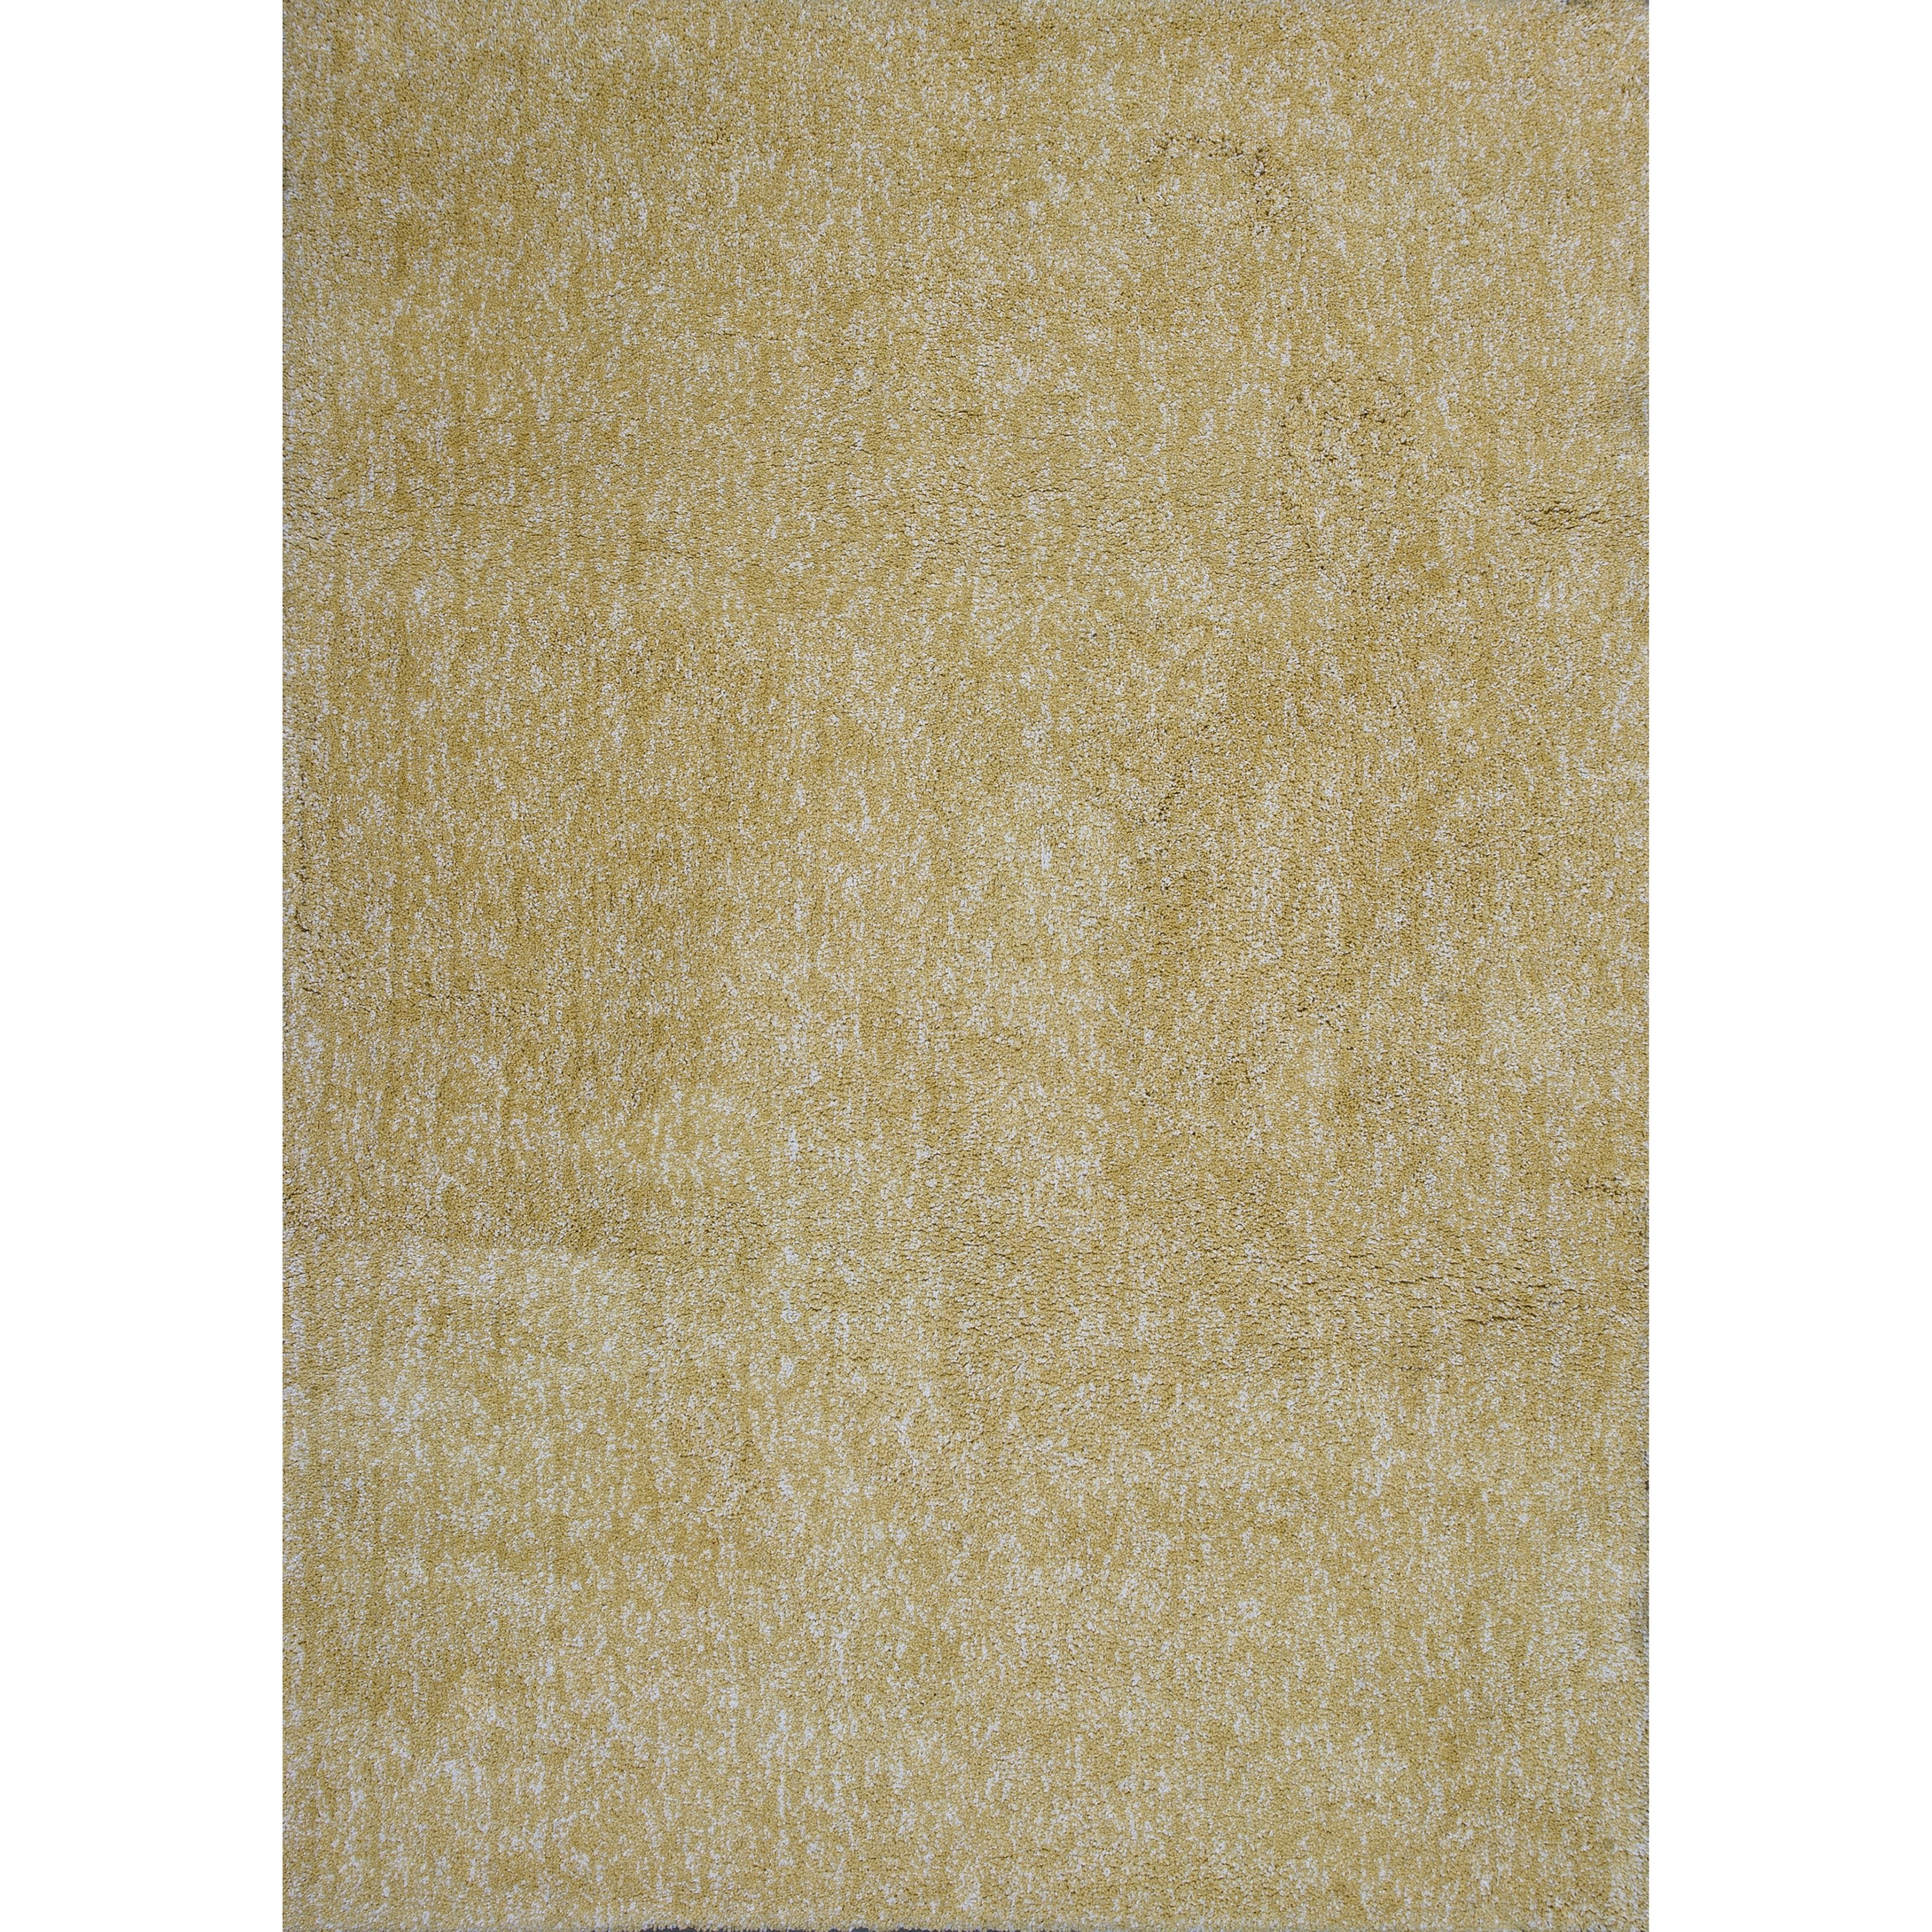 5' X 7' Yellow Heather Shag Area Rug